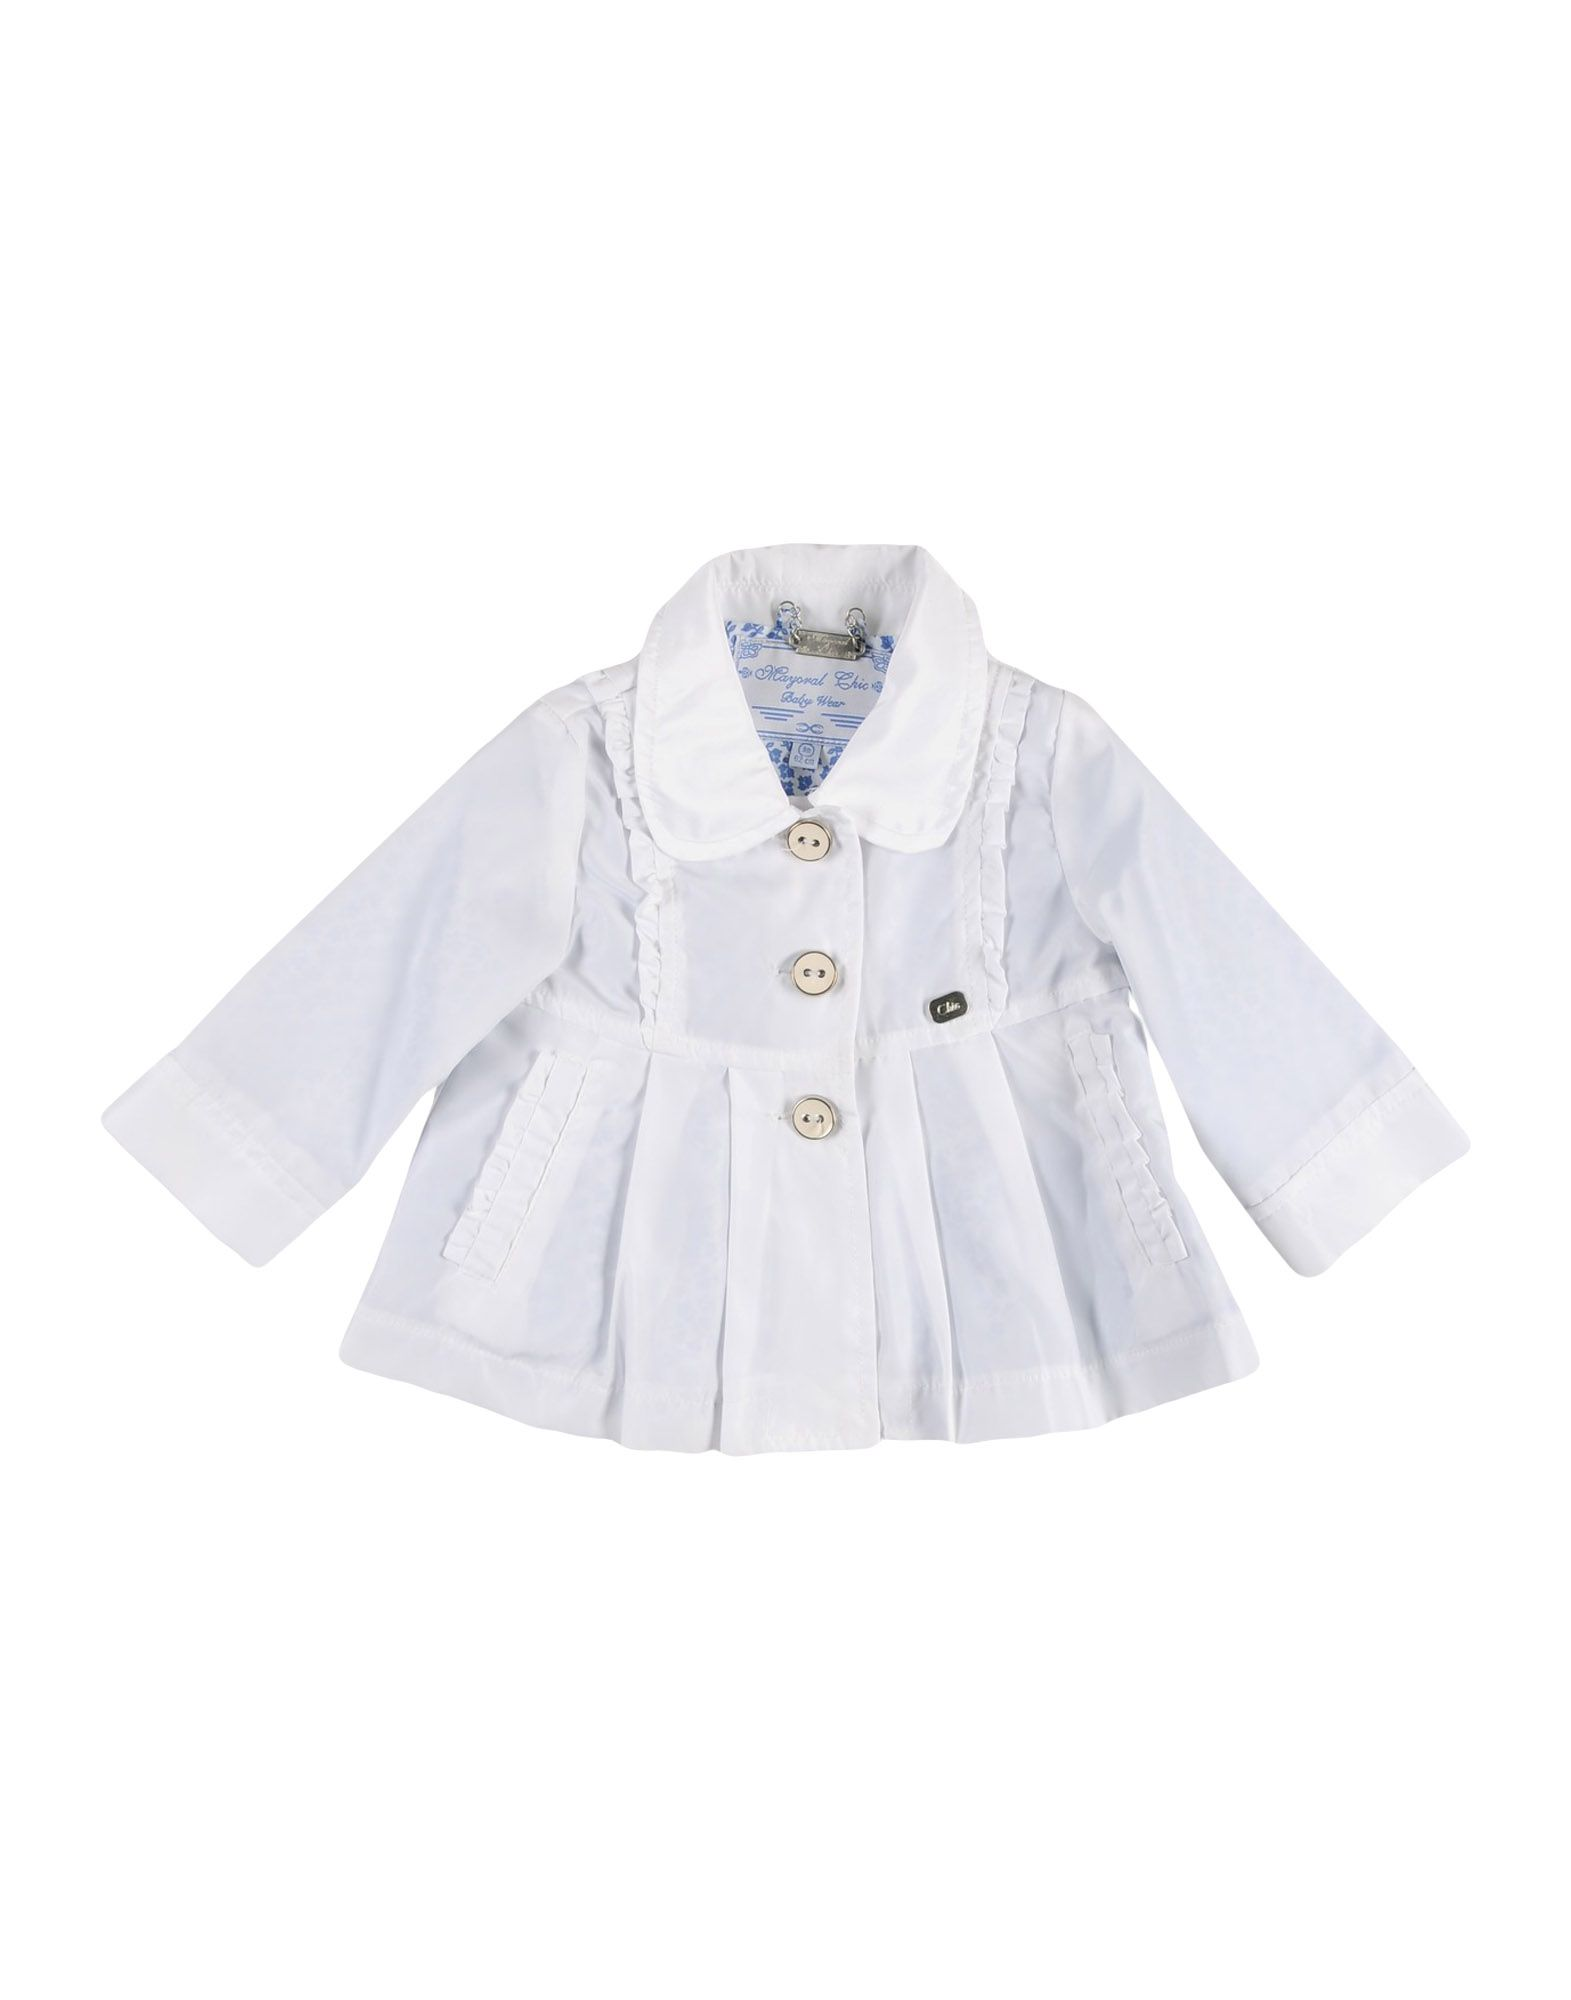 MAYORAL Jacket in White